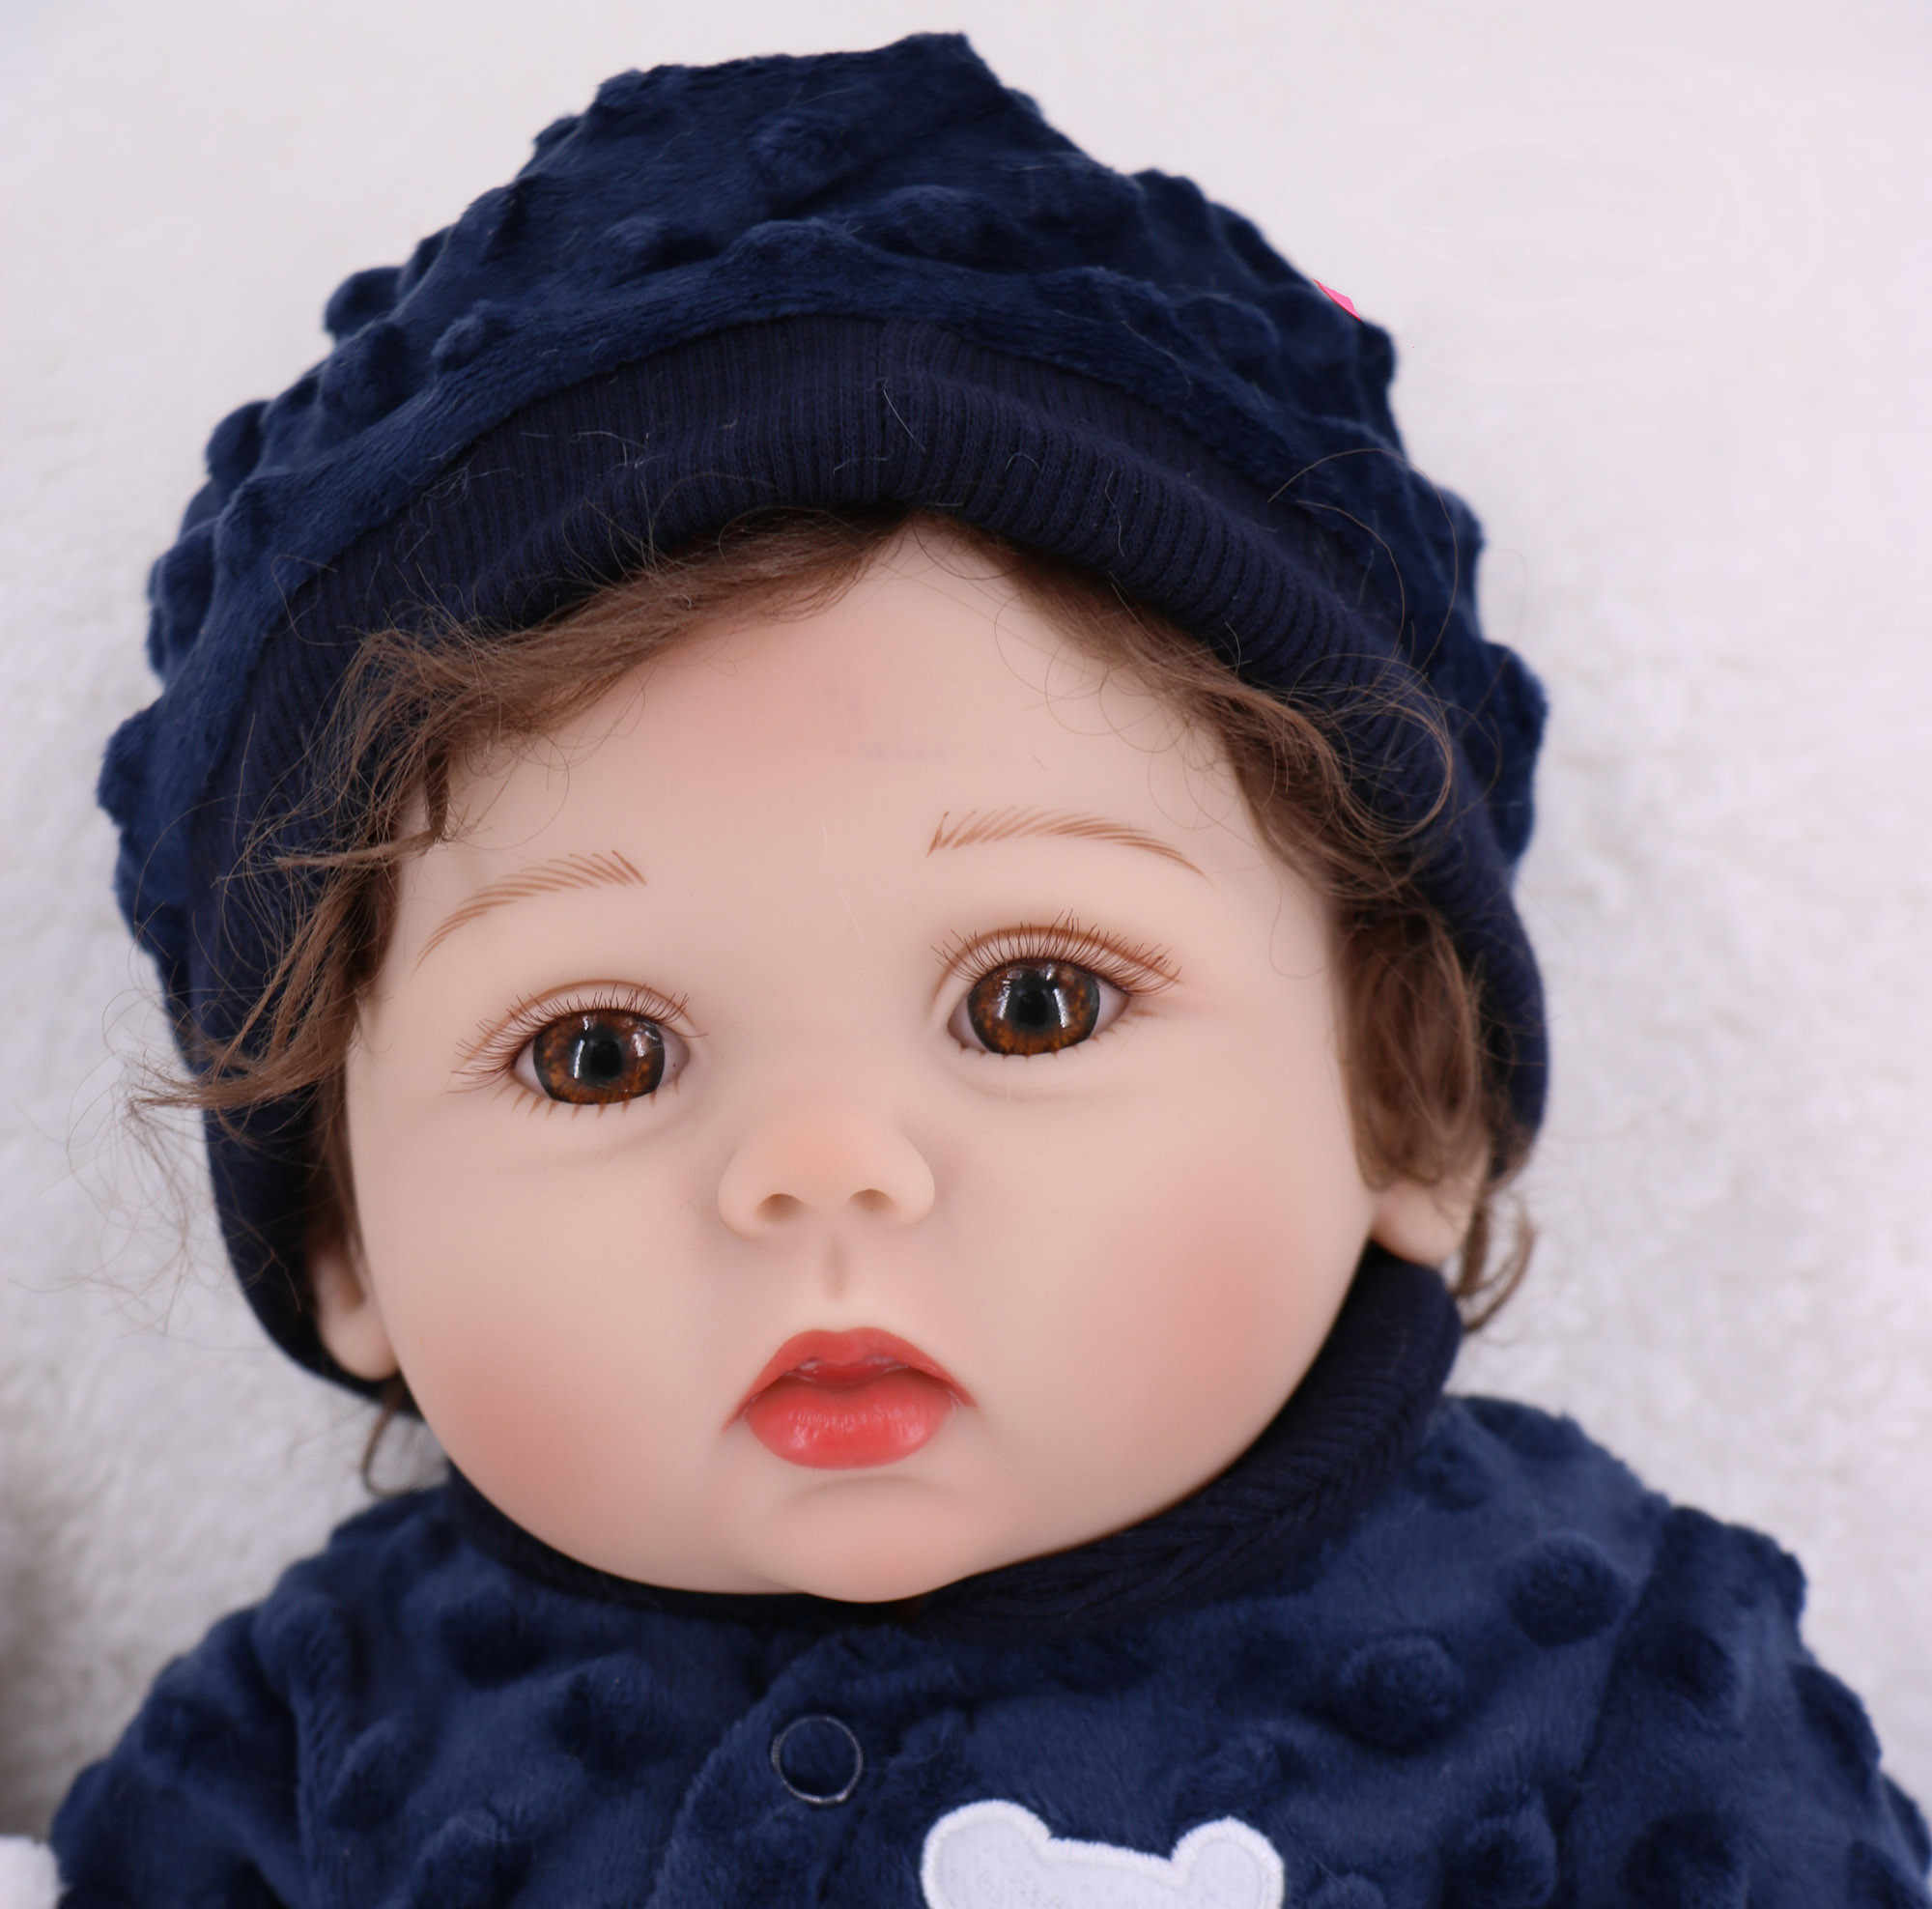 17inch 43cm Bebe Doll Reborn Toddler Girl Full Body Soft Silicone Reborn Baby Girl Doll Realistic Baby Bath Toy Gifts Brinquedos Aliexpress